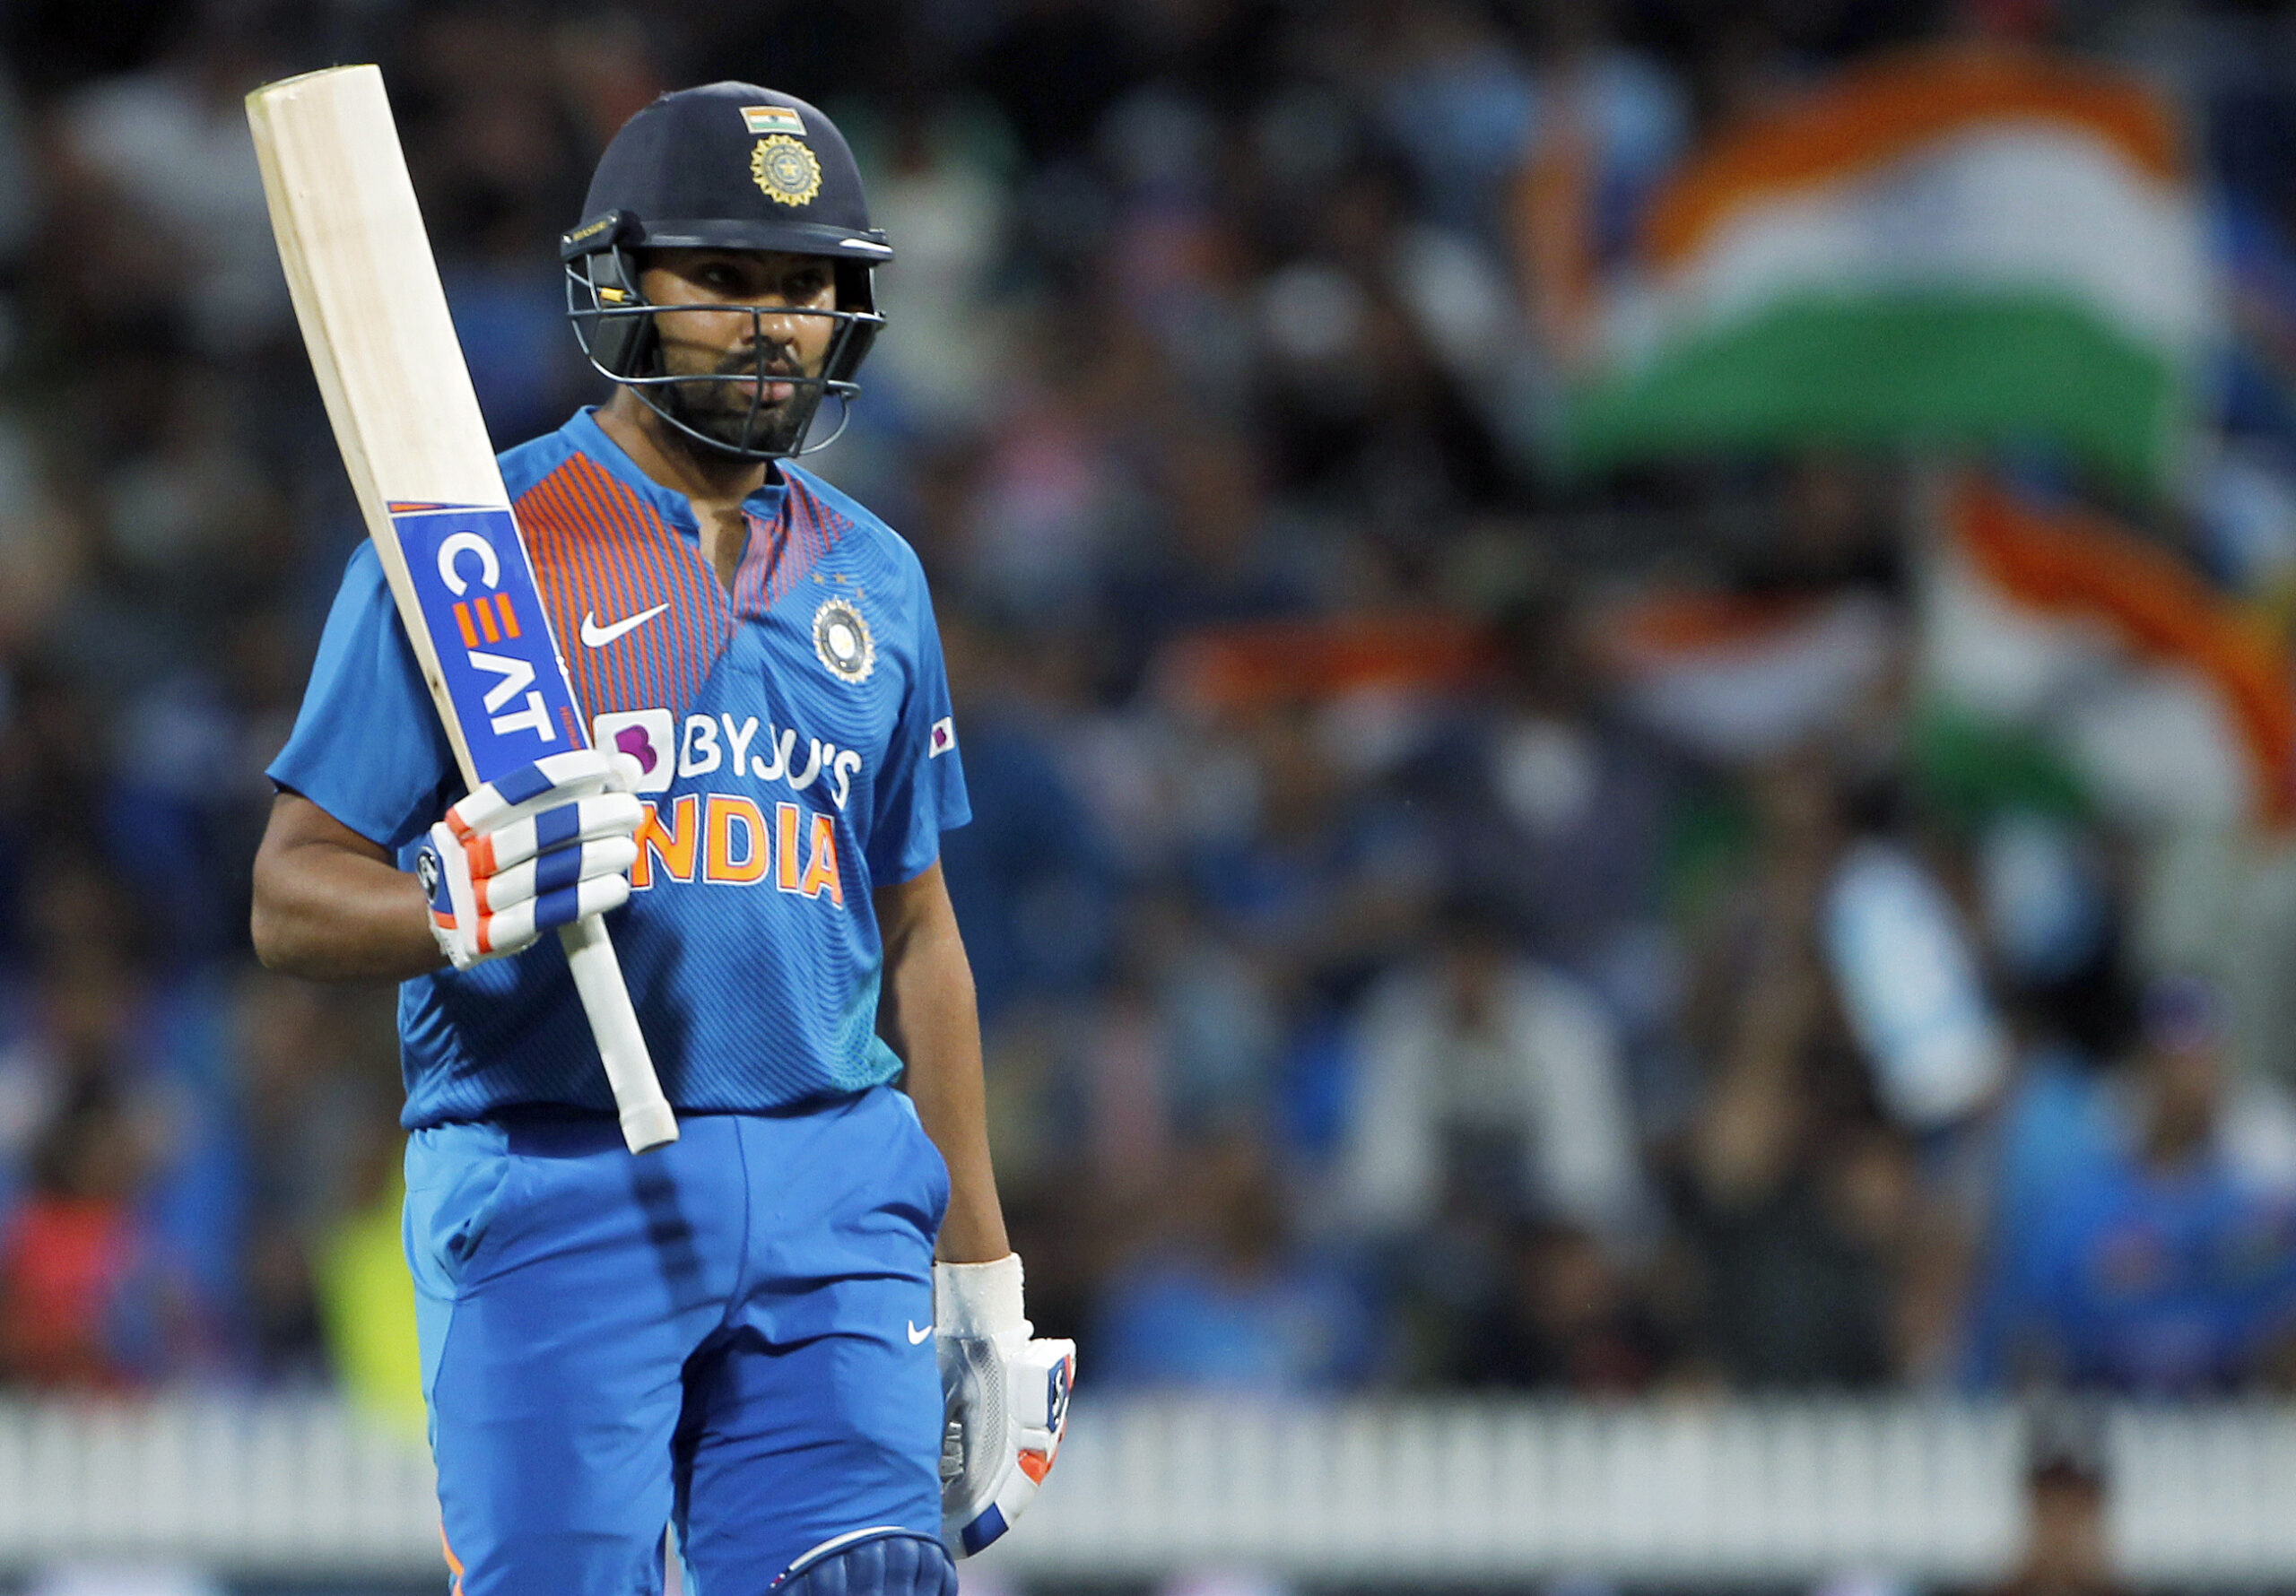 Rohit is still 70% fit: Saurav Ganguly on Rohit Sharma's fitness